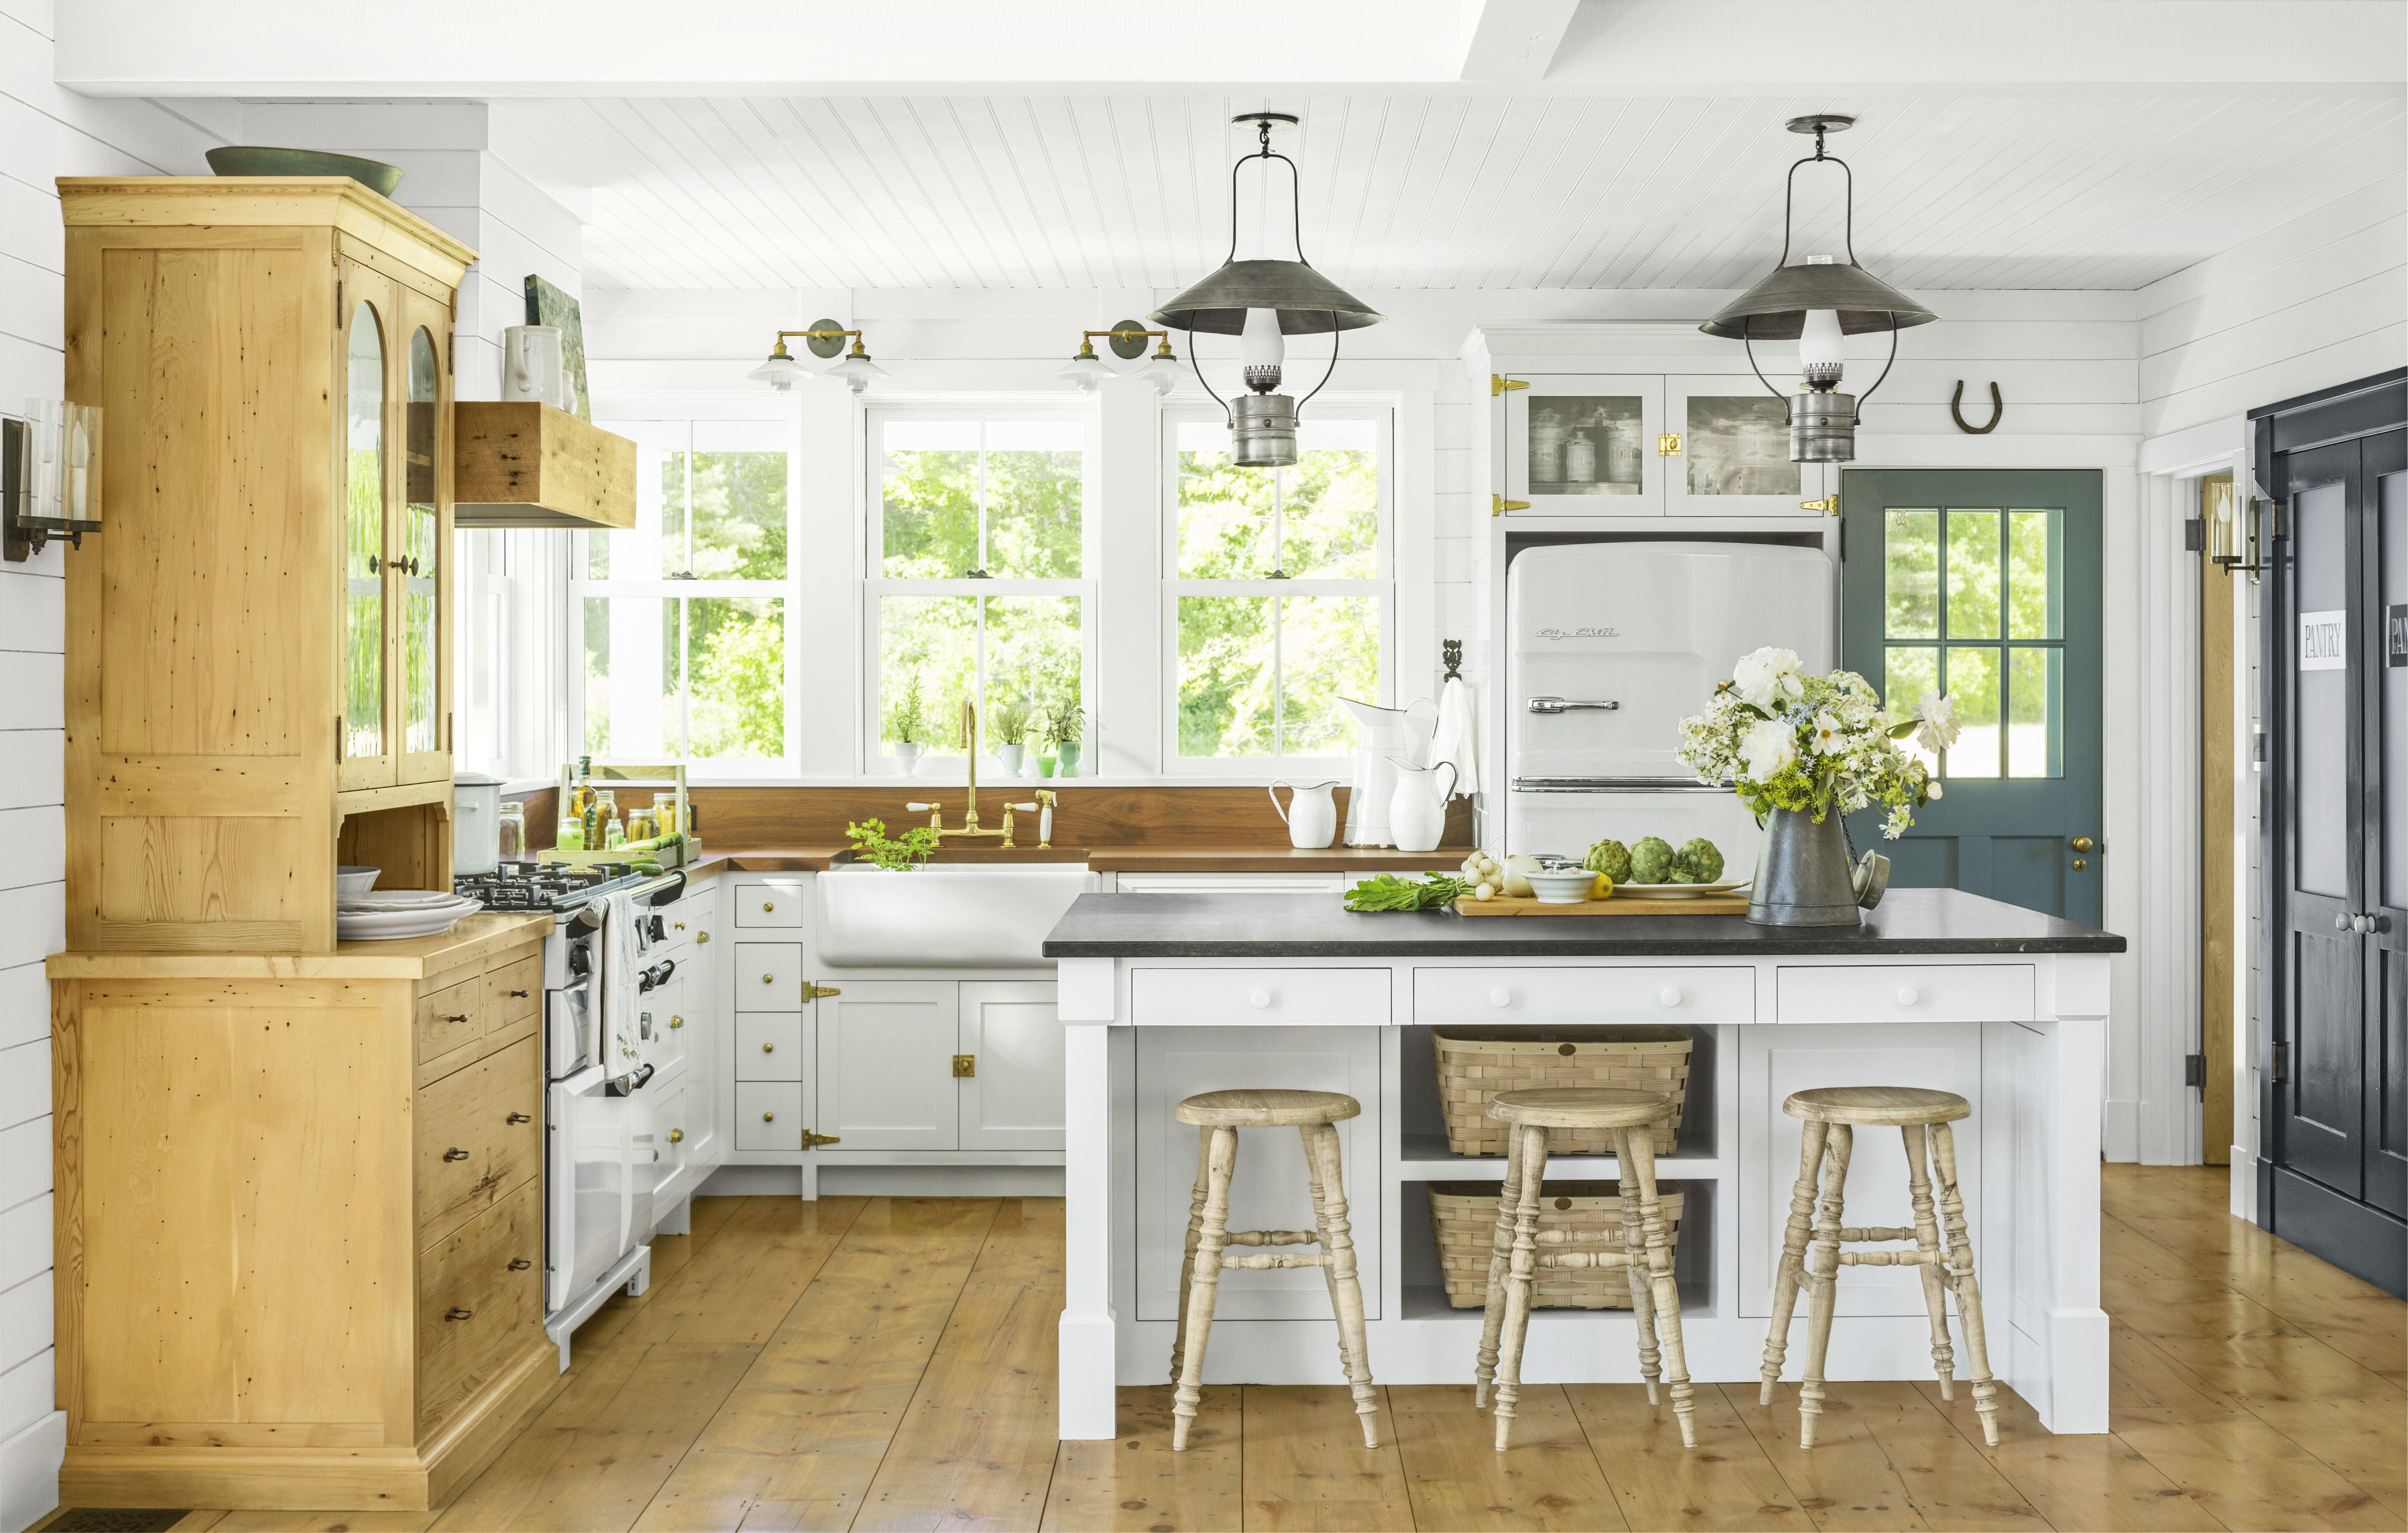 The 16 Best White Kitchen Cabinet Paint Colors for a Clean ...